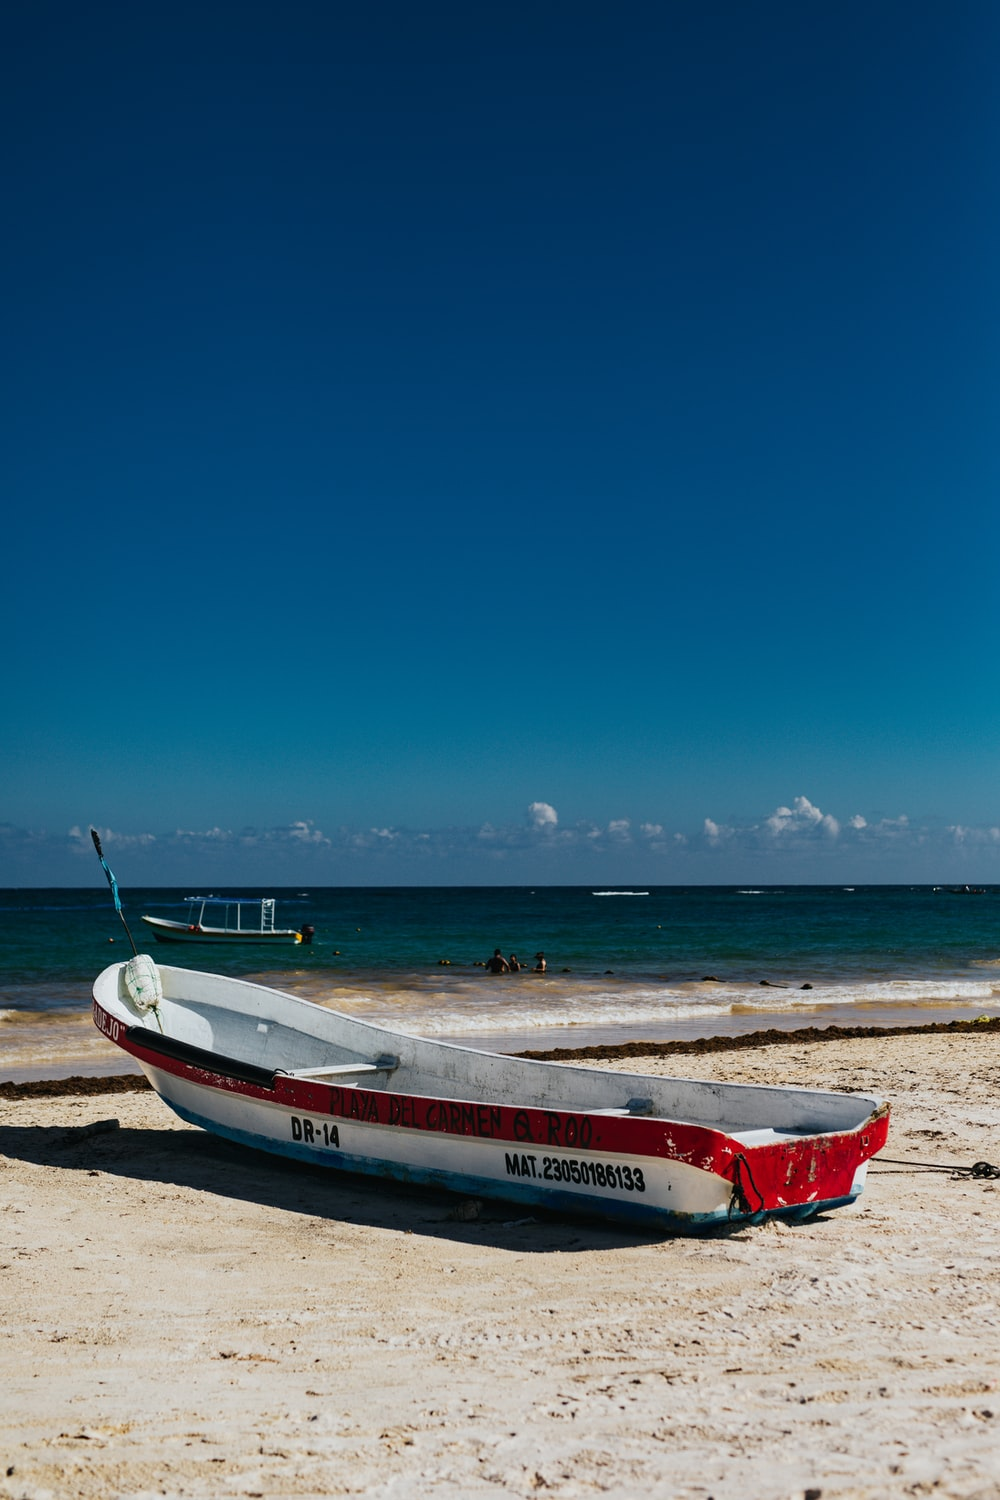 white and red row boat on shoe under blue sky during daytime